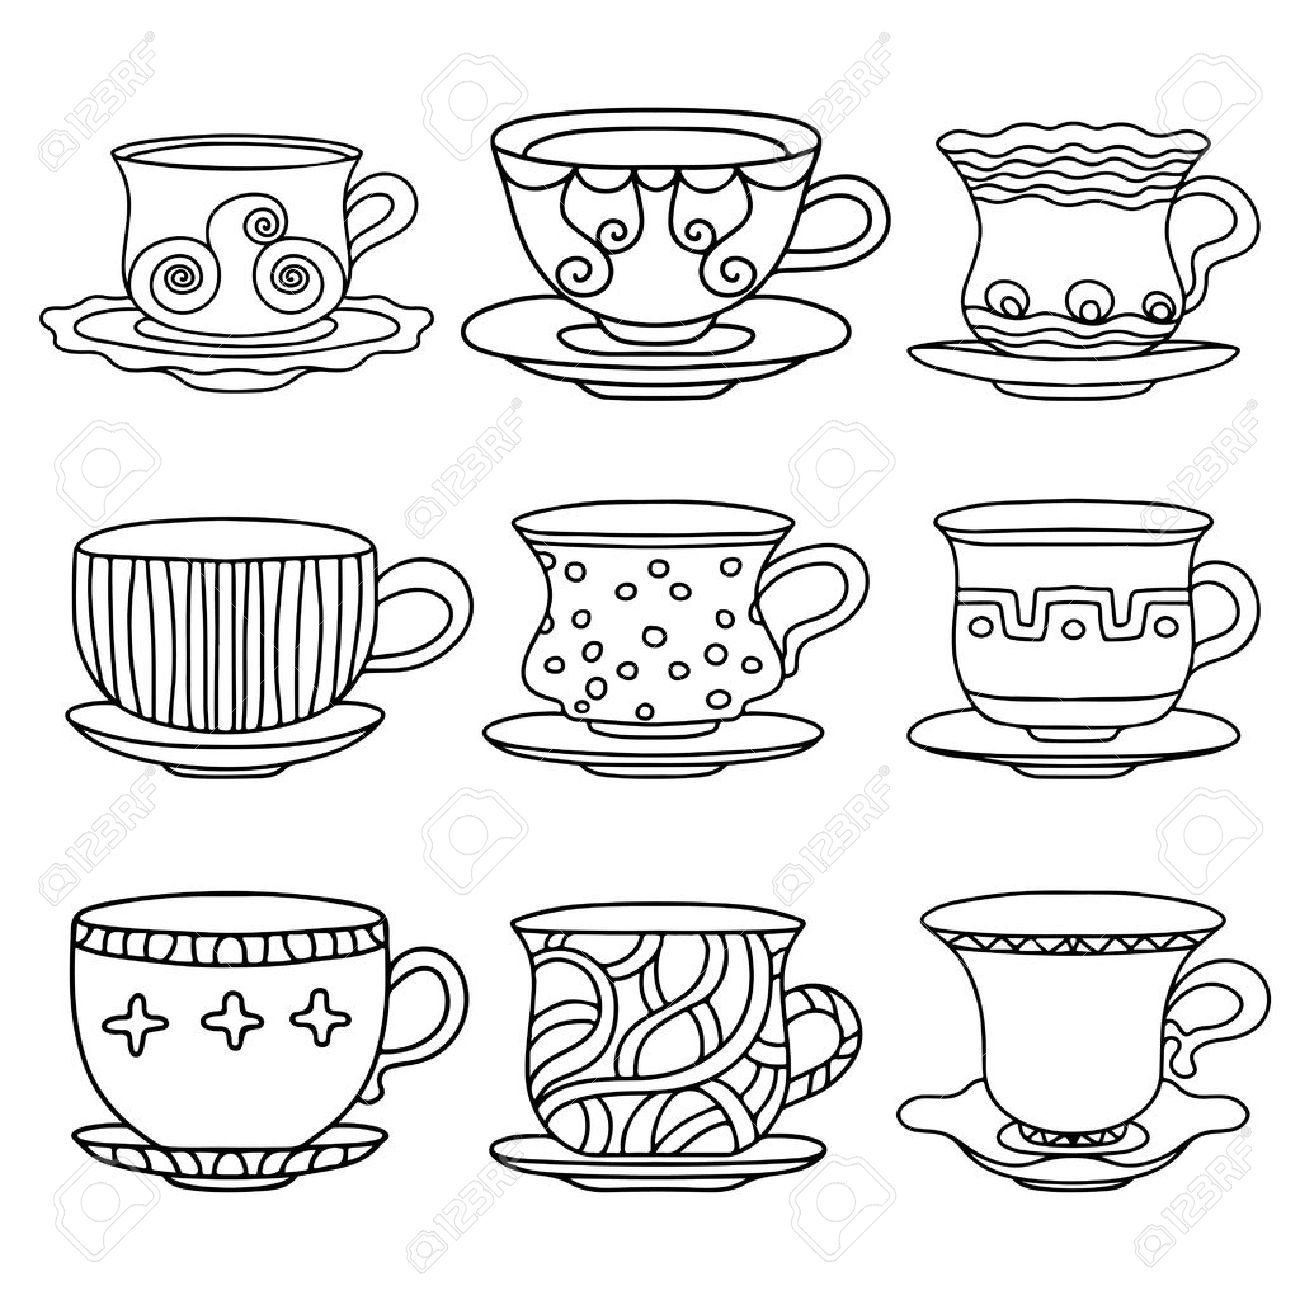 simple coloring pages of tea cups | Image result for simple car doodle | Adult coloring pages ...